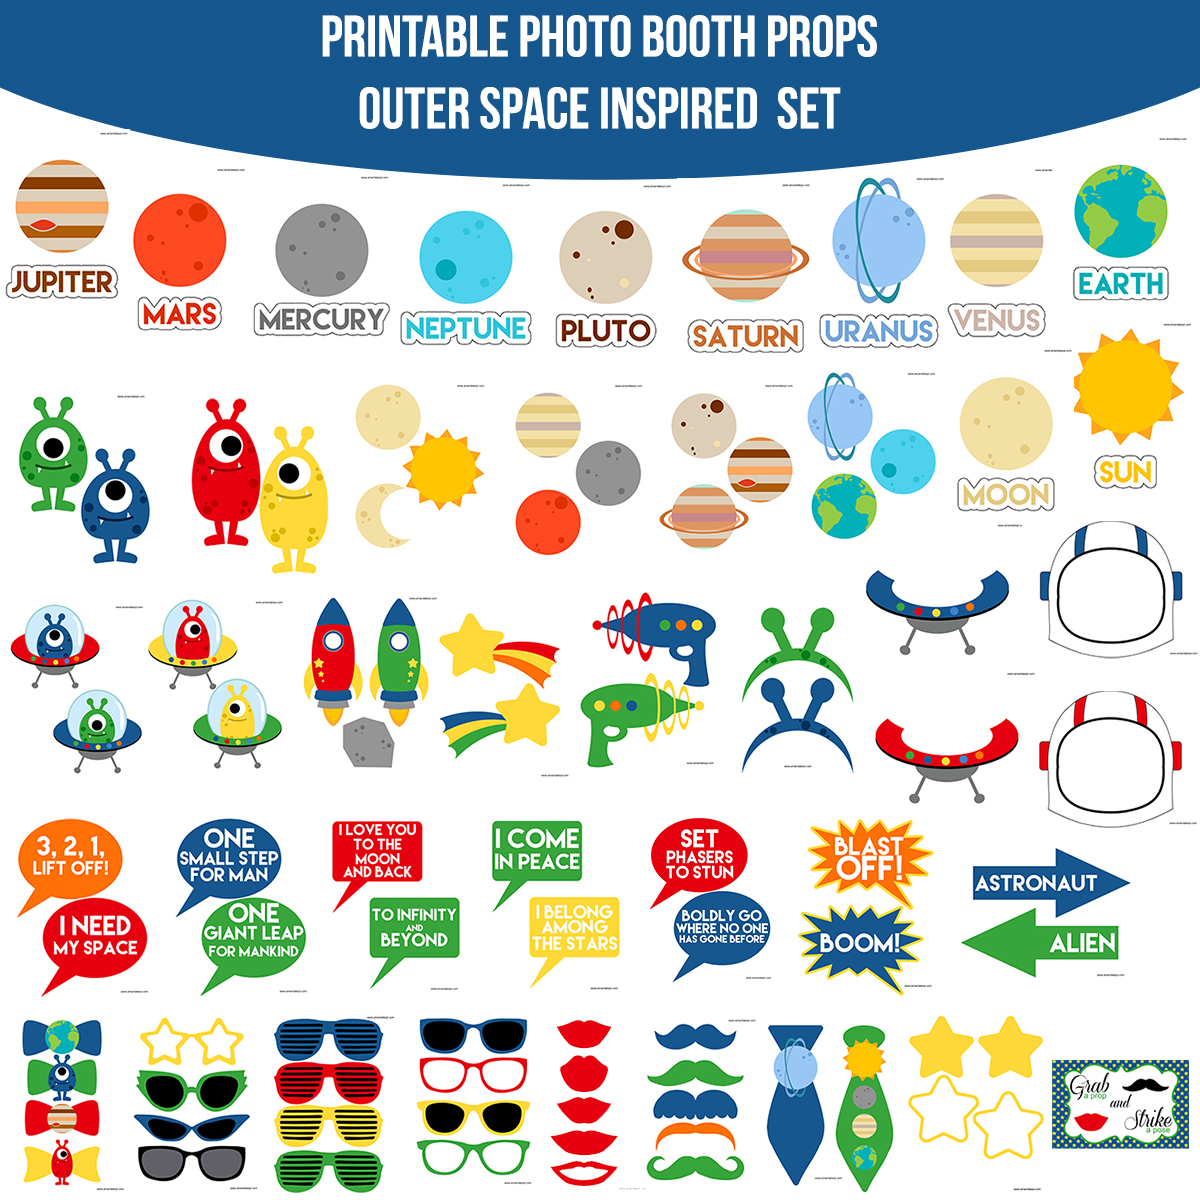 See the Set - To View The Whole Outer Space Printable Photo Booth Prop Set Click Here